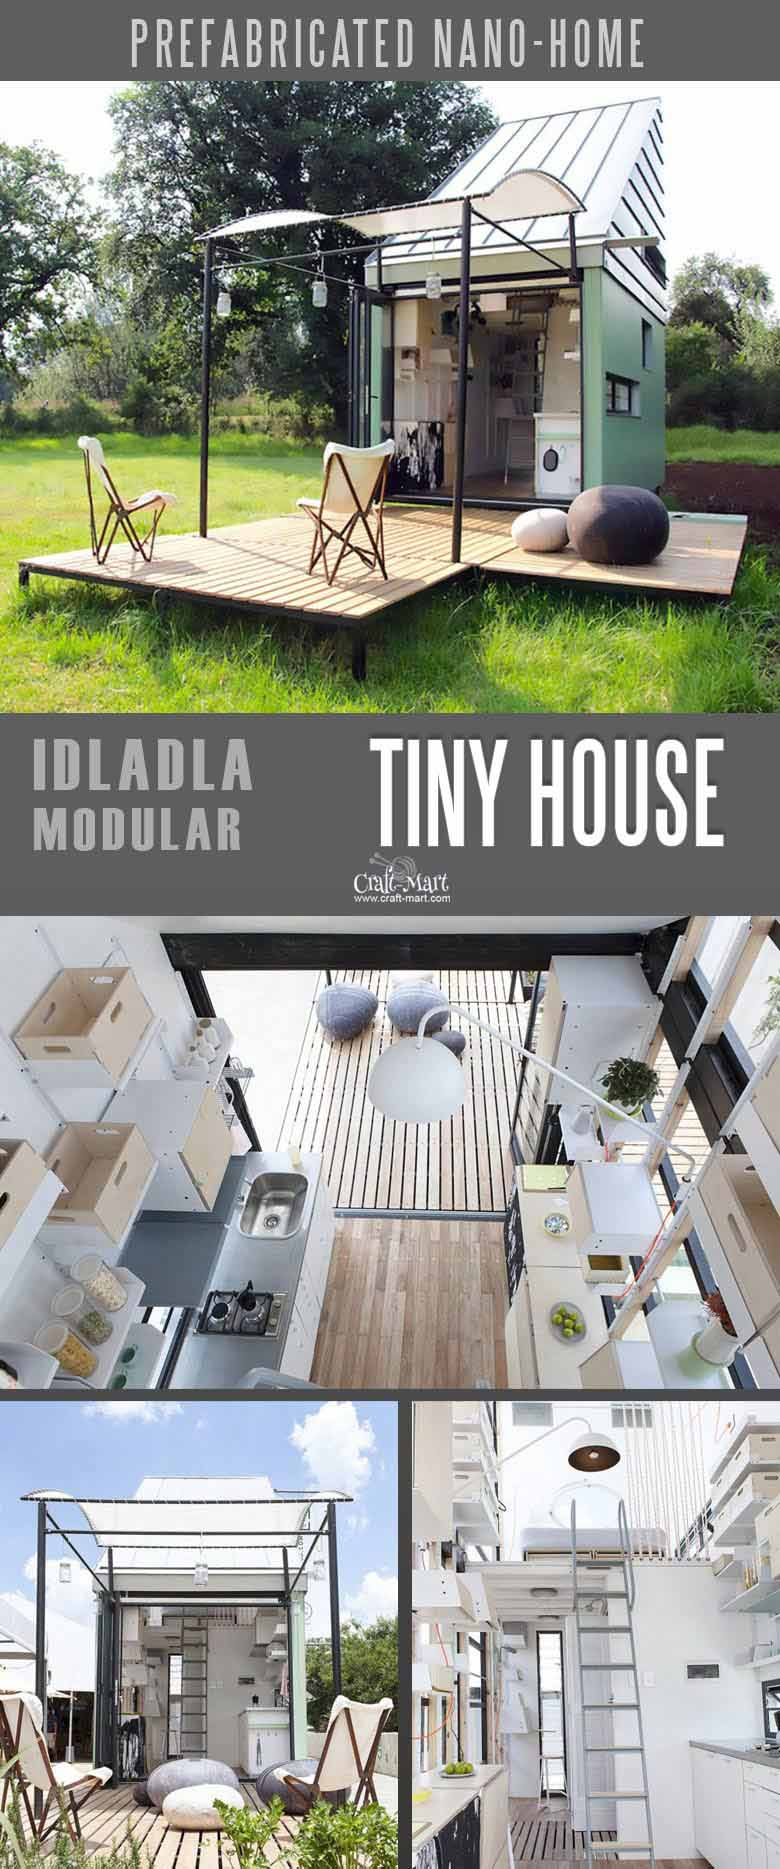 Modular tiny home that you can afford! 100% sustainable and does NOT need any utilities besides internet! You can add custom features from most of the tiny home builders. Keep dreaming on or take an action and get one of these little affordable homes!#tinyhouseplans #tinyhome #tinyhouses #diyproject #realestate #smallhouseplans